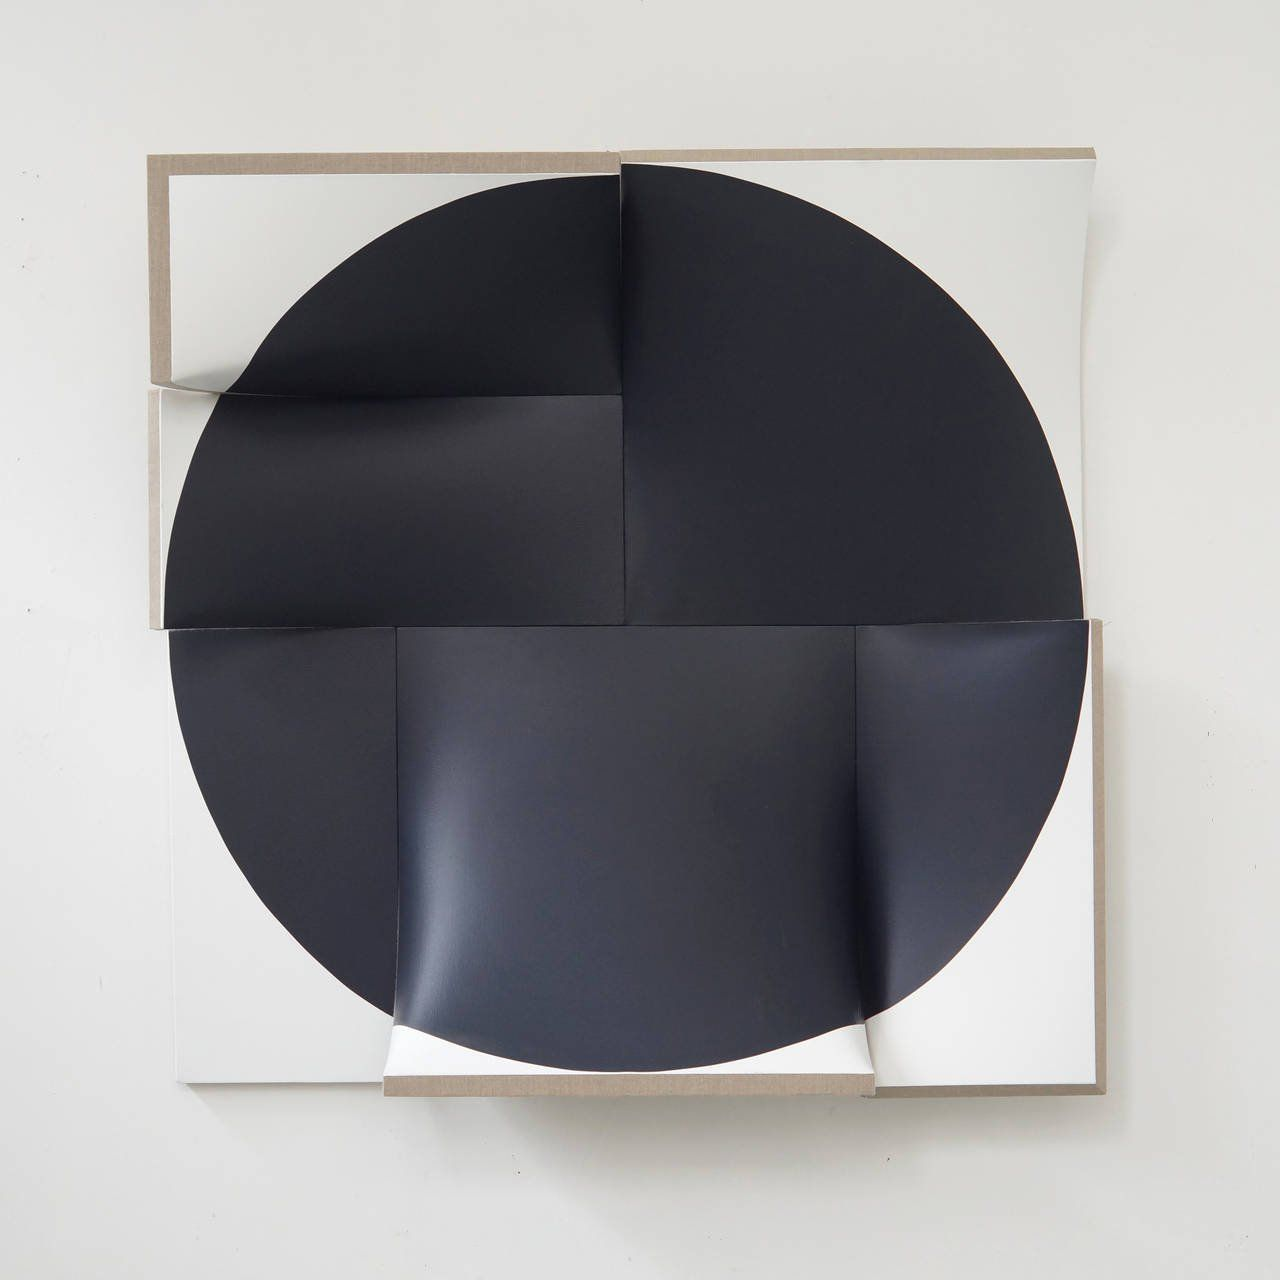 Improved pointless black 1 abstract sculpture abstract